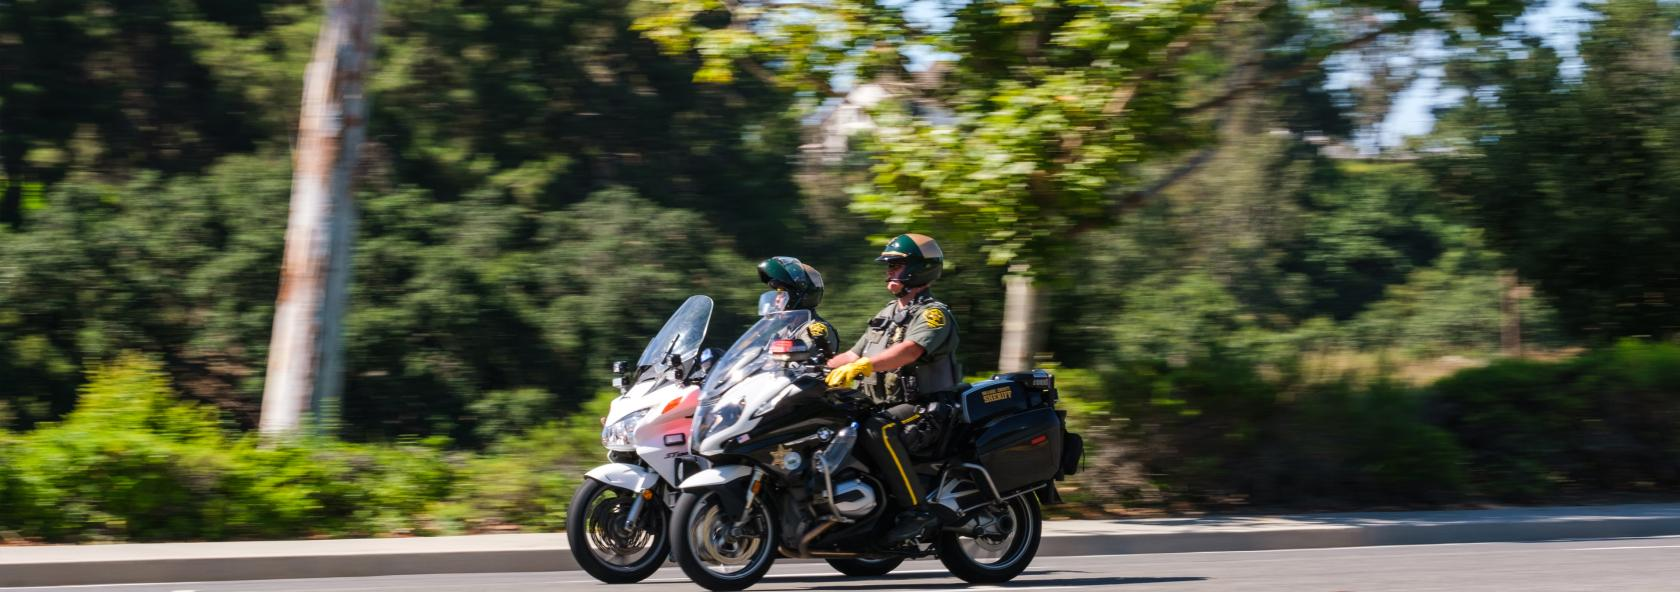 Two police officers driving motorcycles